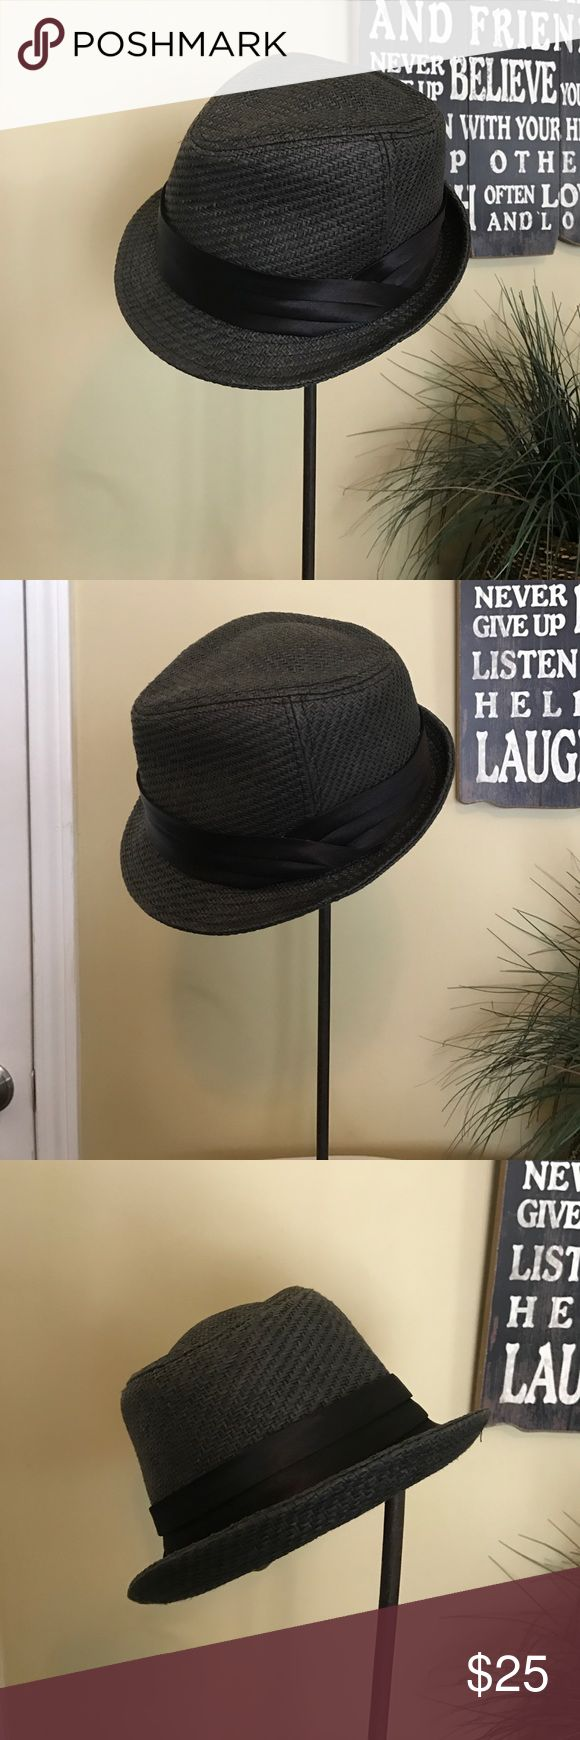 Black fedora hat Fedora hat. One size. Nice looking hat. Accessories Hats